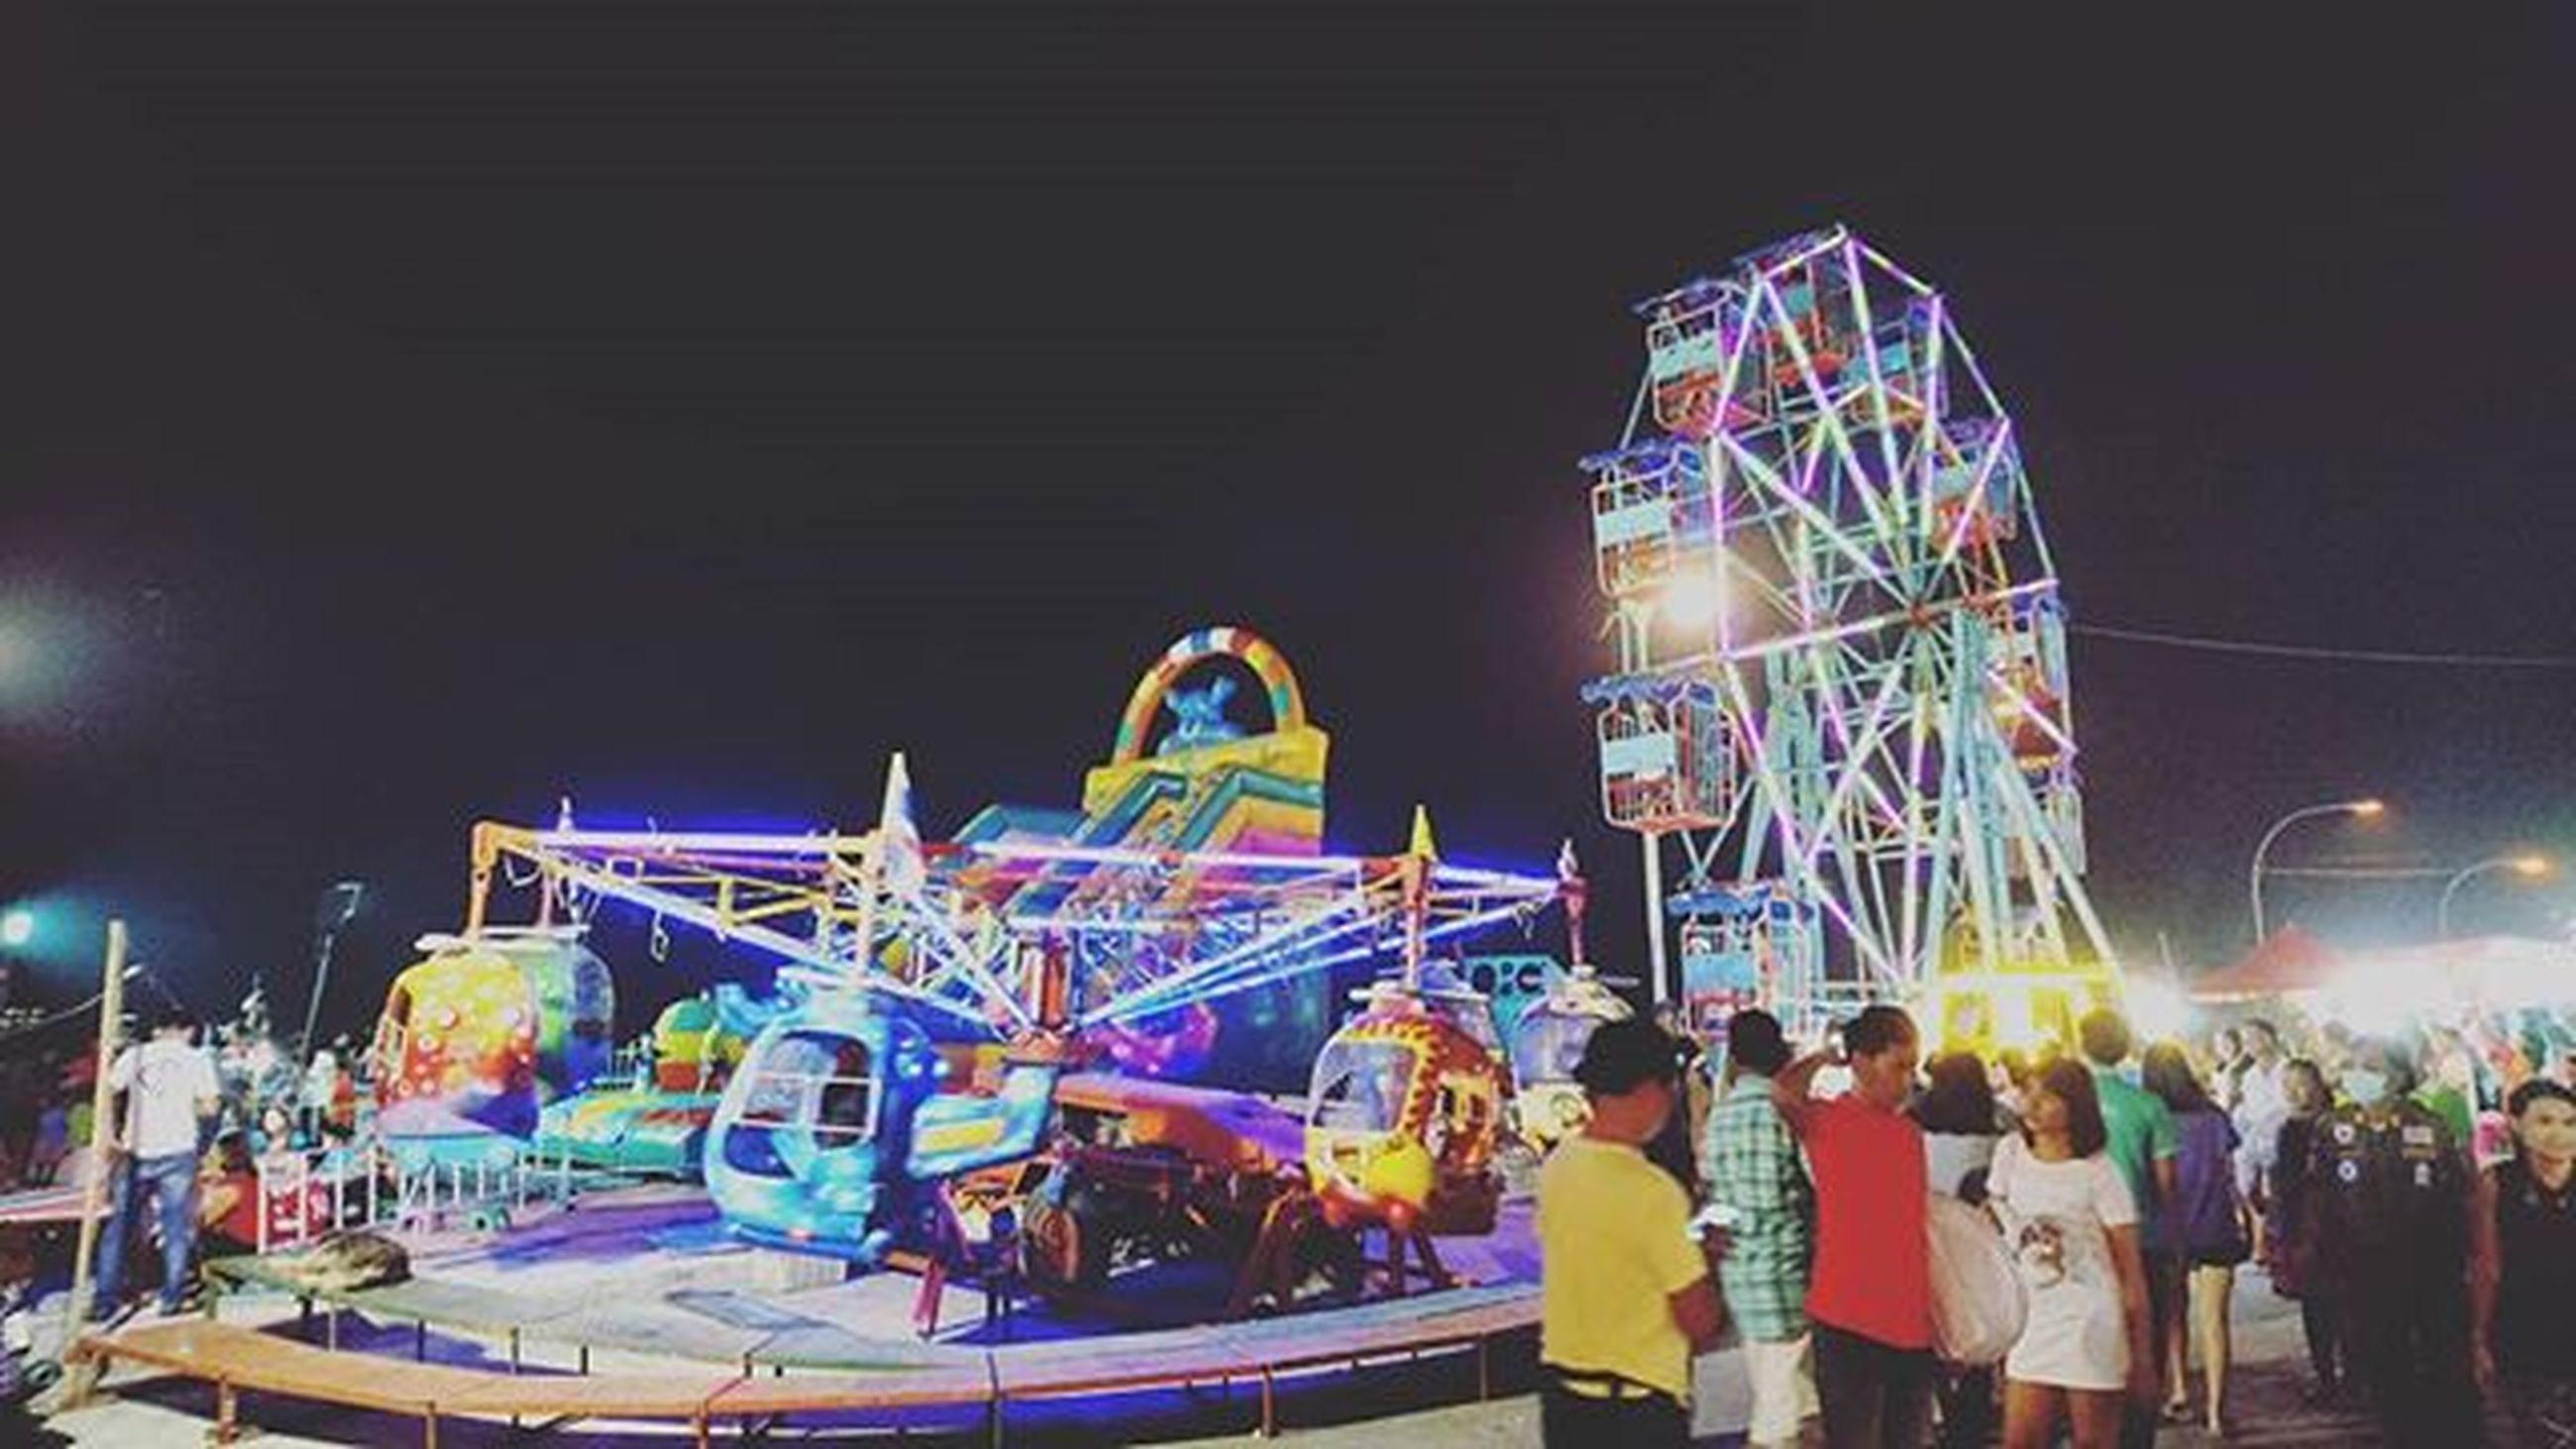 illuminated, night, amusement park, built structure, multi colored, architecture, large group of people, amusement park ride, arts culture and entertainment, leisure activity, building exterior, city, men, lifestyles, lighting equipment, city life, person, incidental people, enjoyment